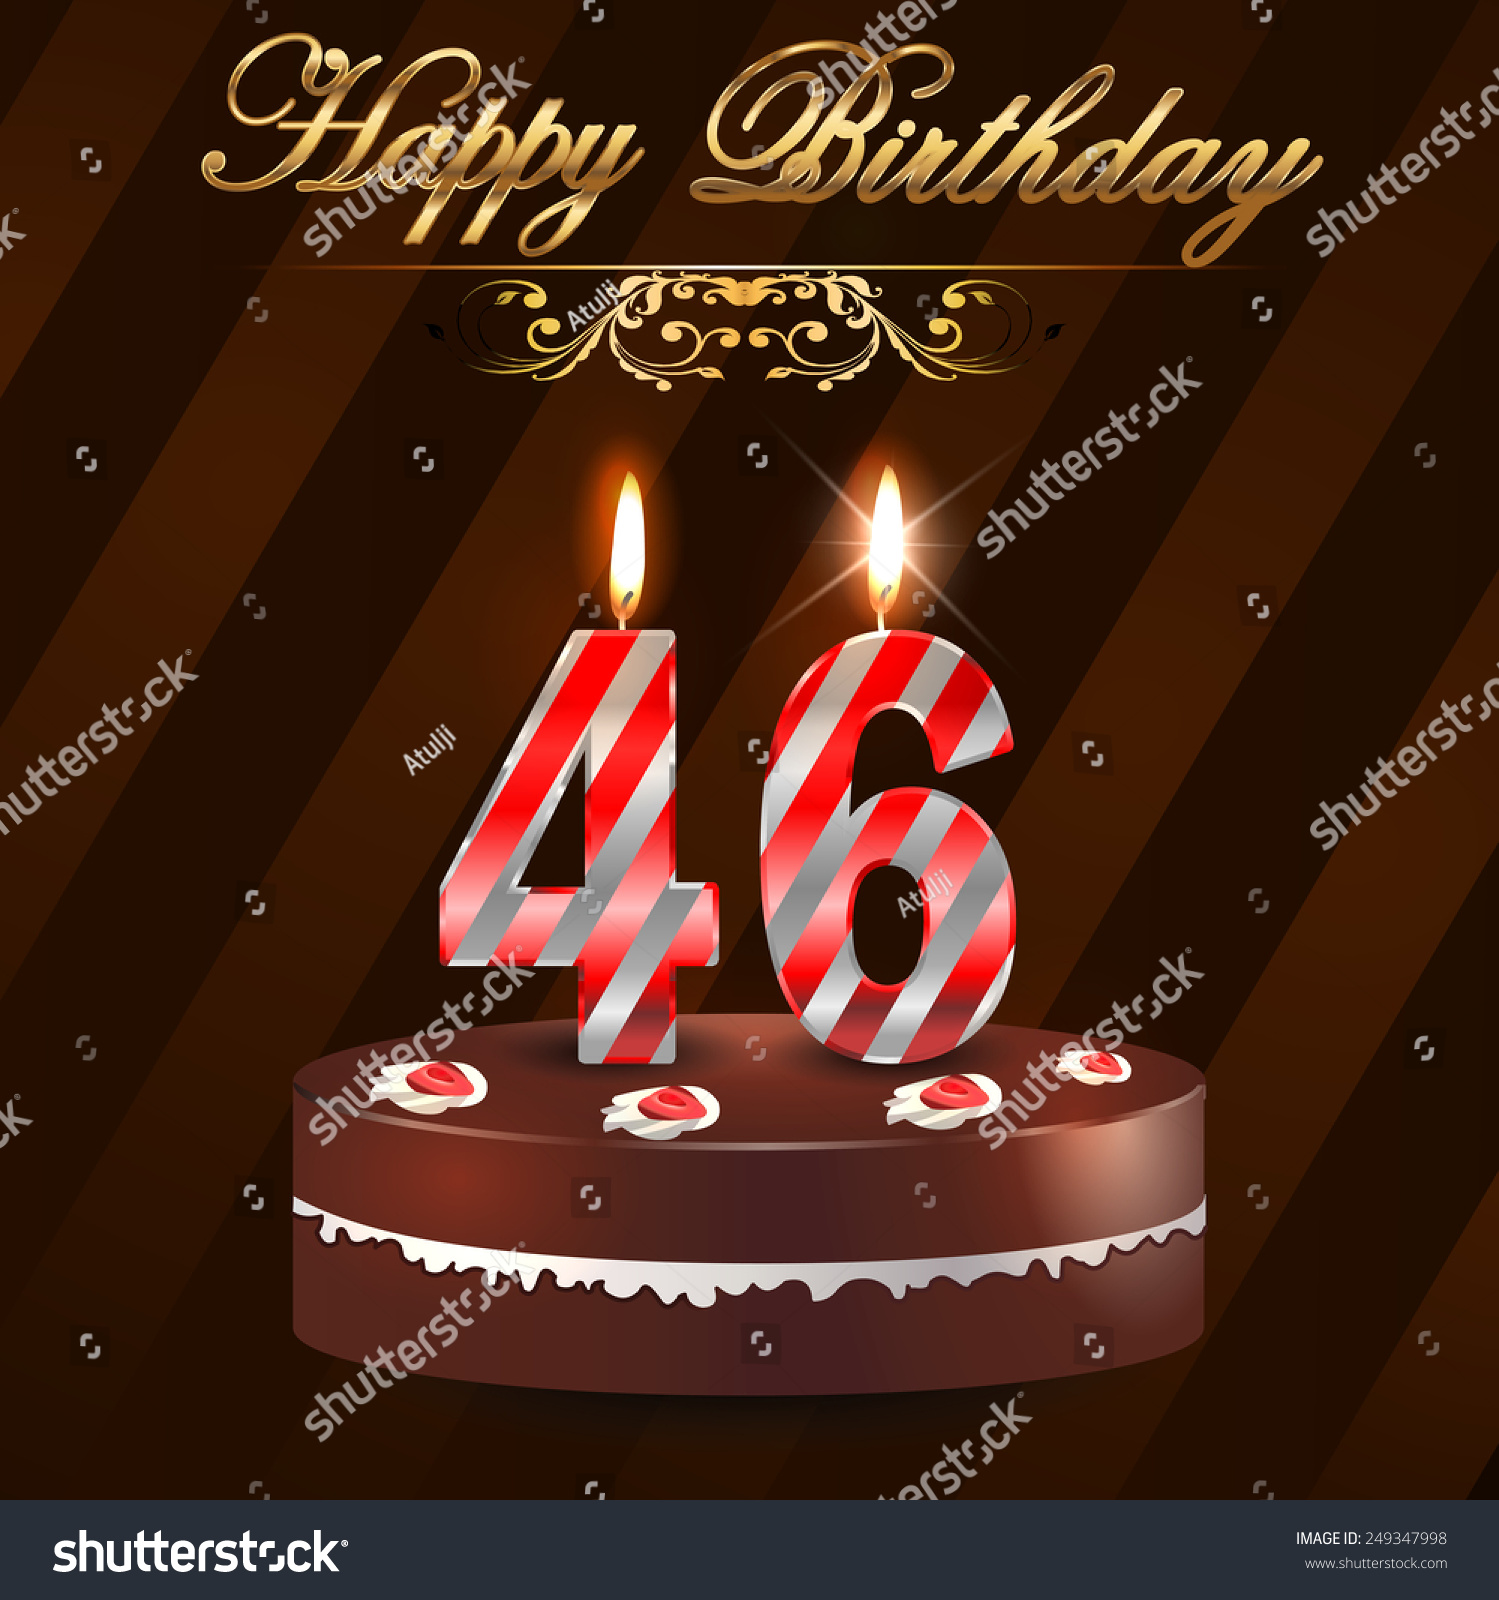 46 Year Happy Birthday Card With Cake And Candles, 46th